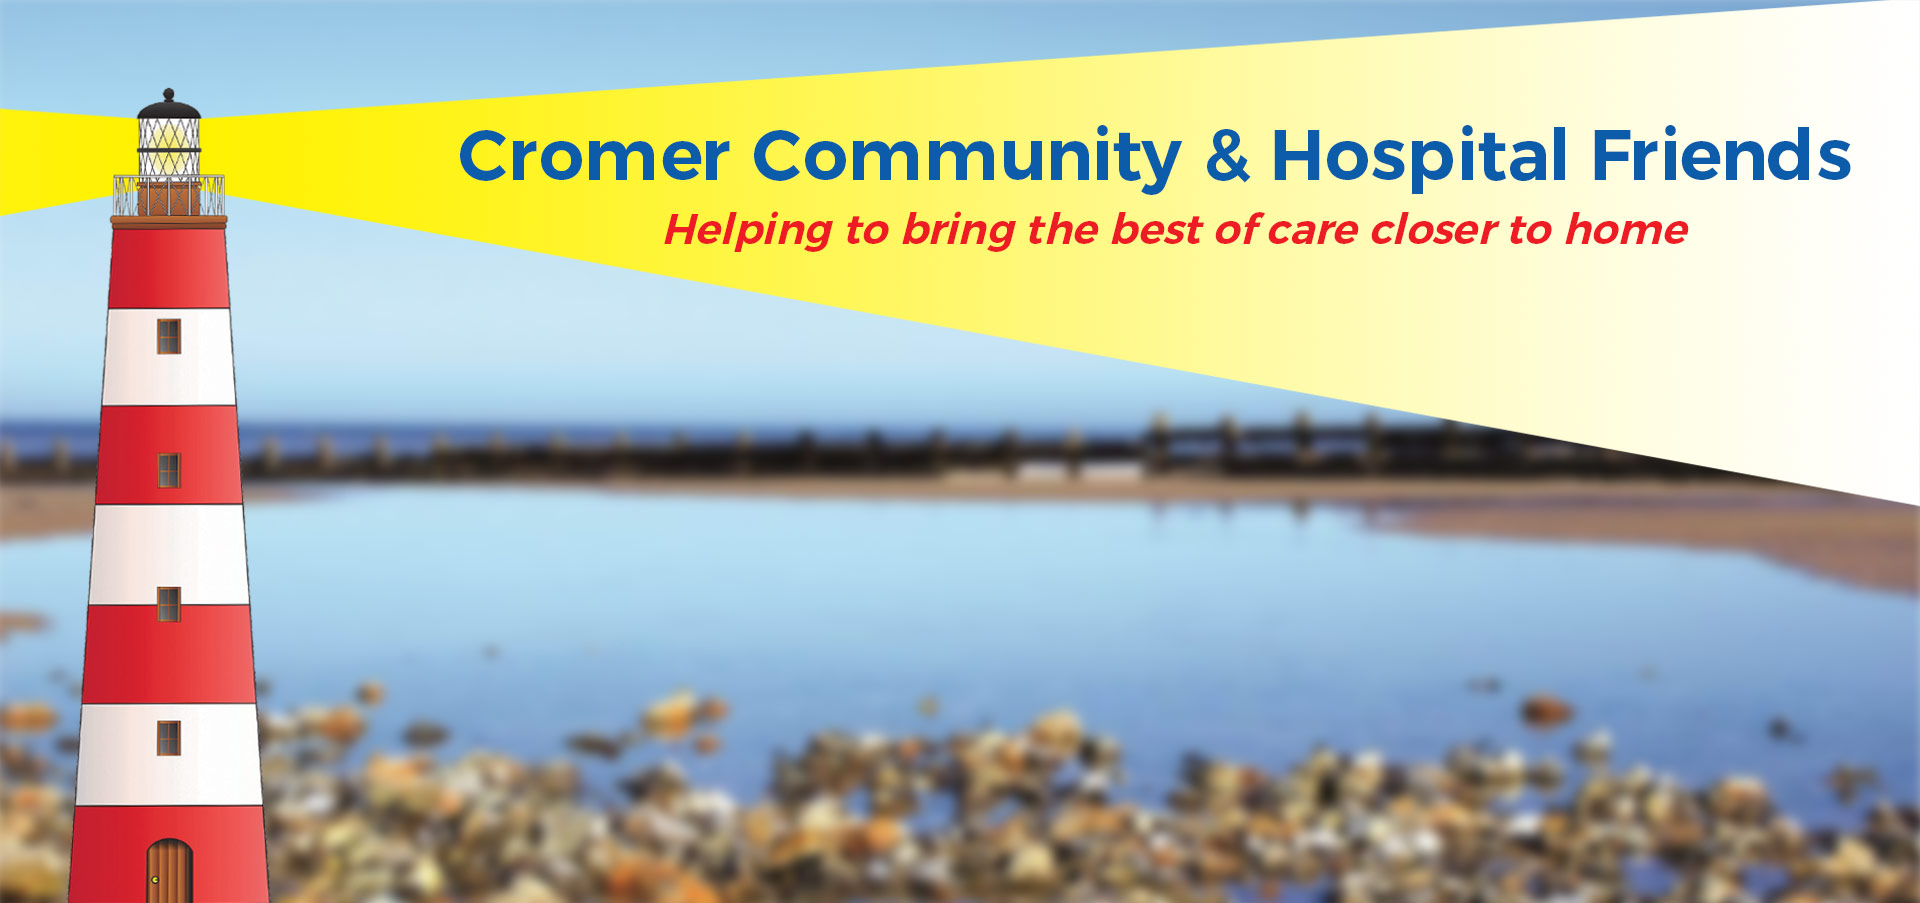 Cromer-Community-Hospital-Friends